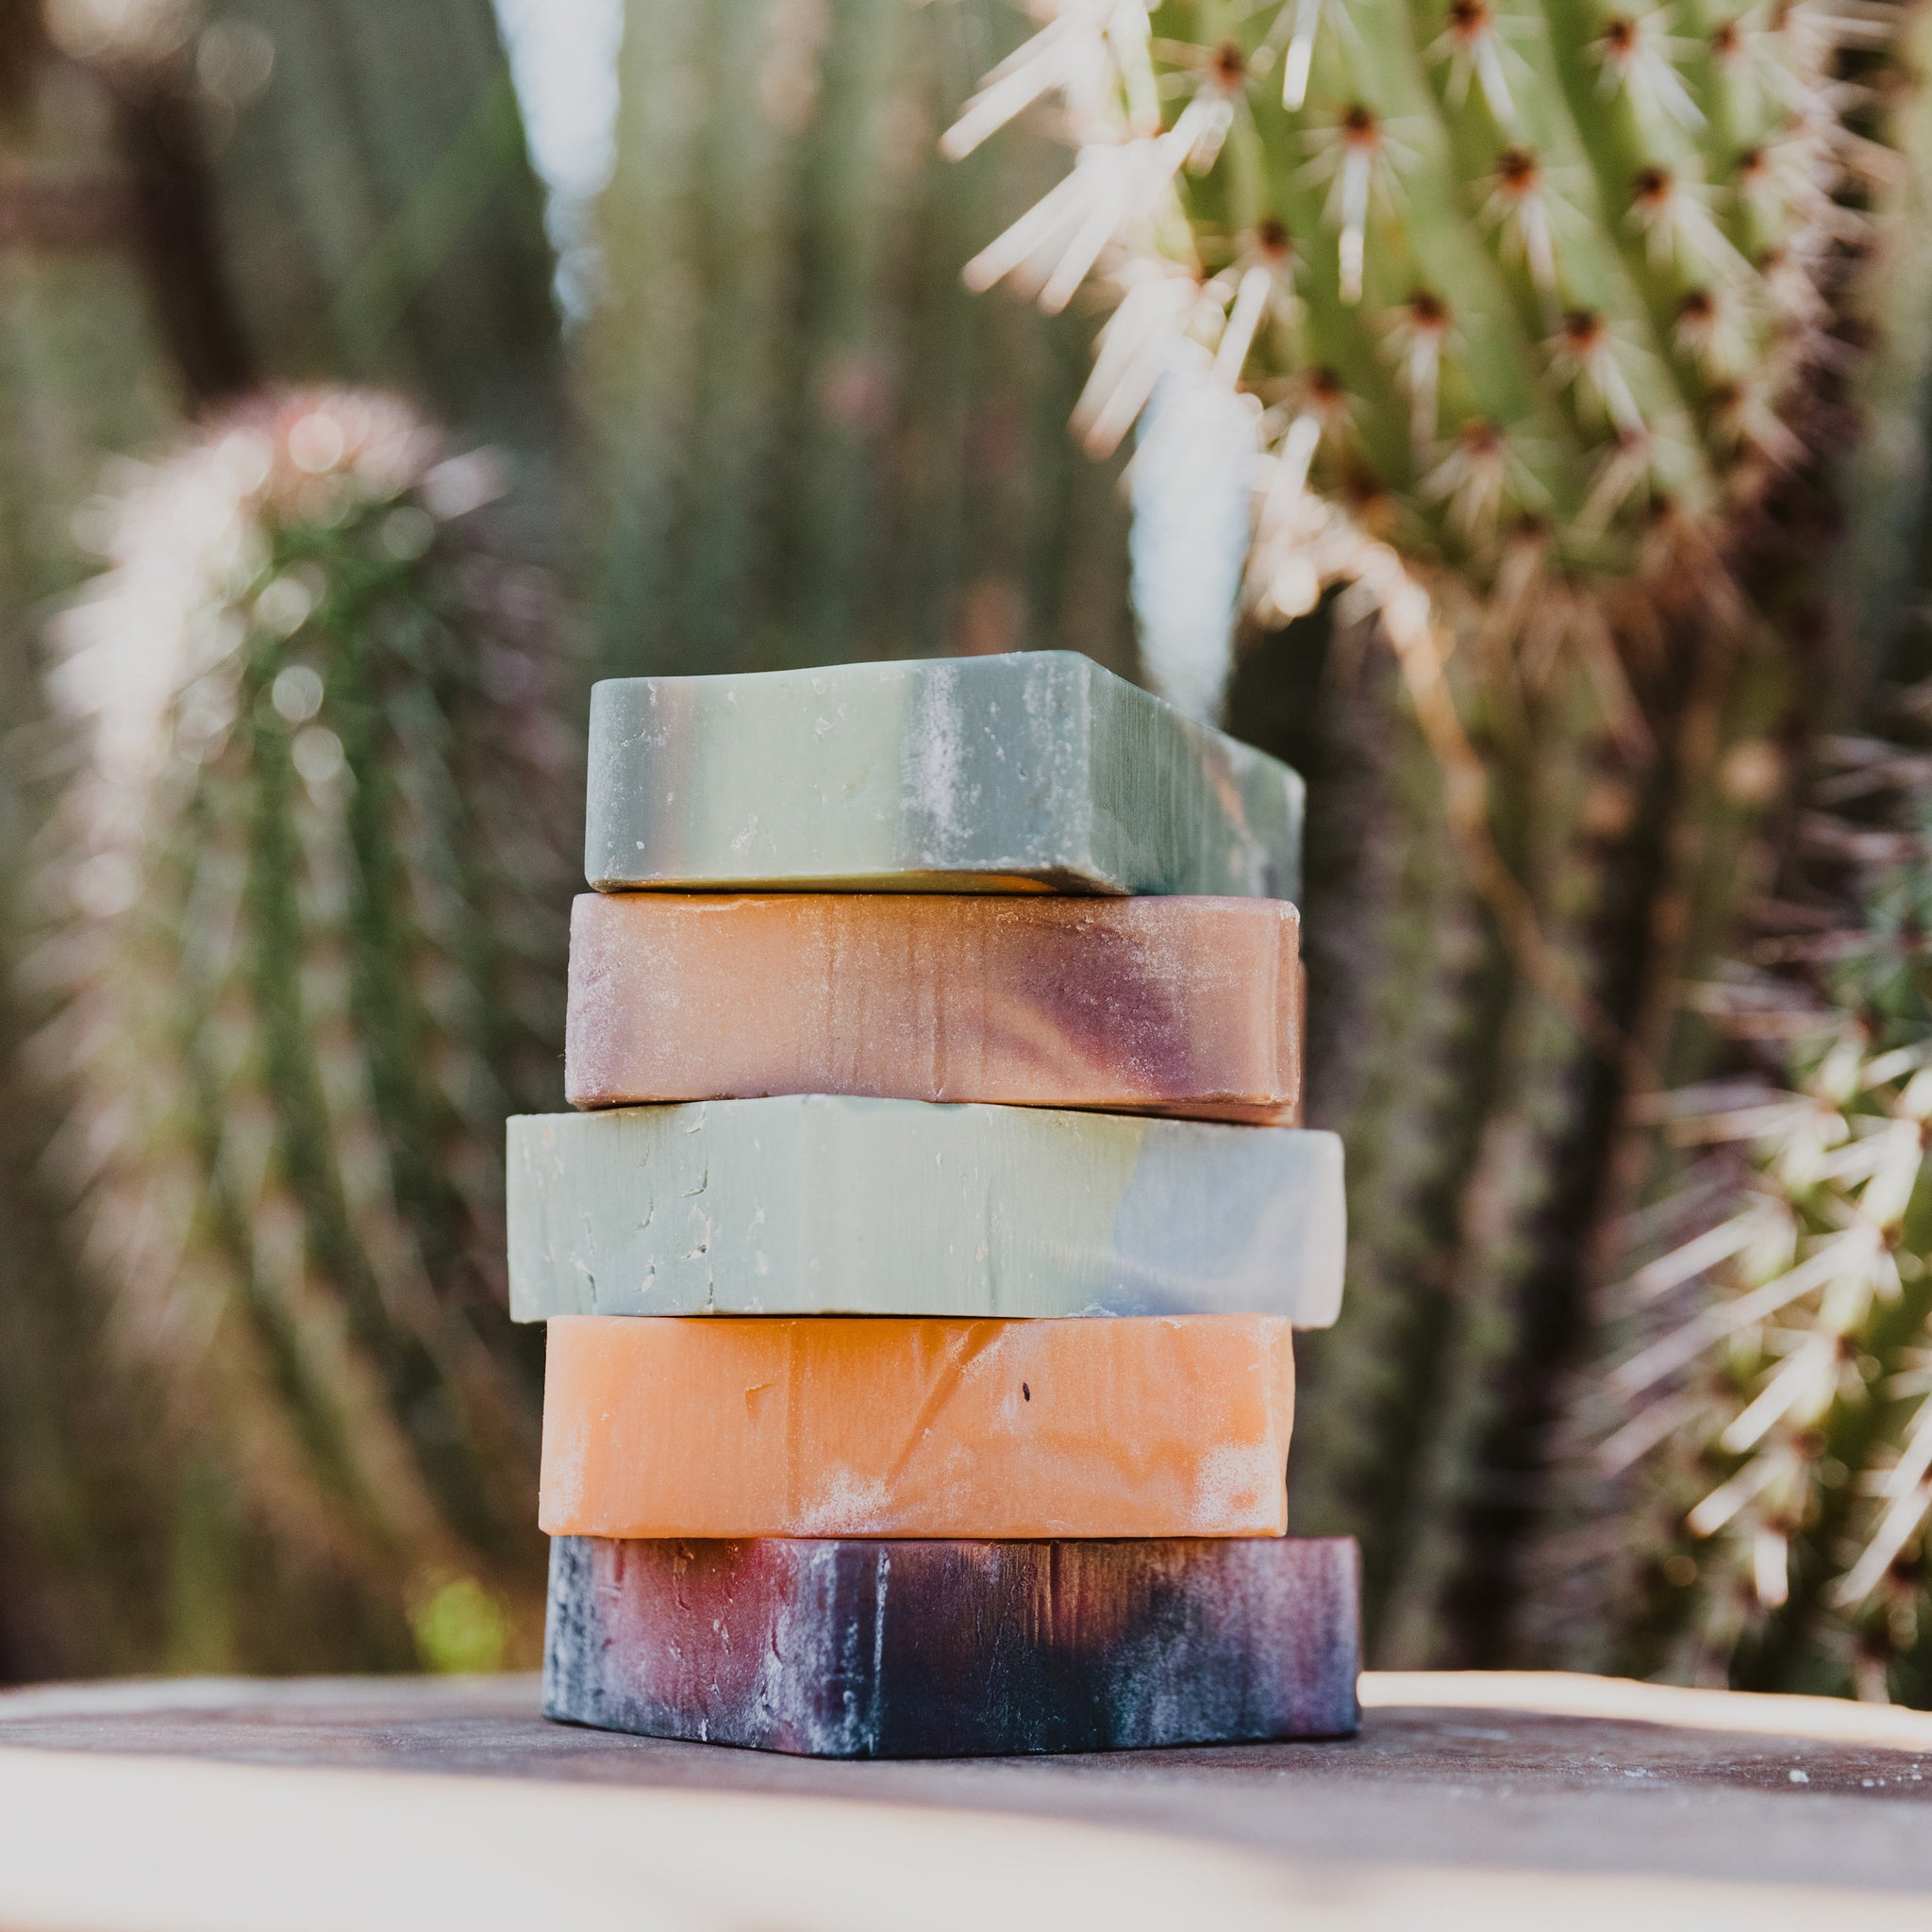 The Slick and Simple Soap Subscription Service